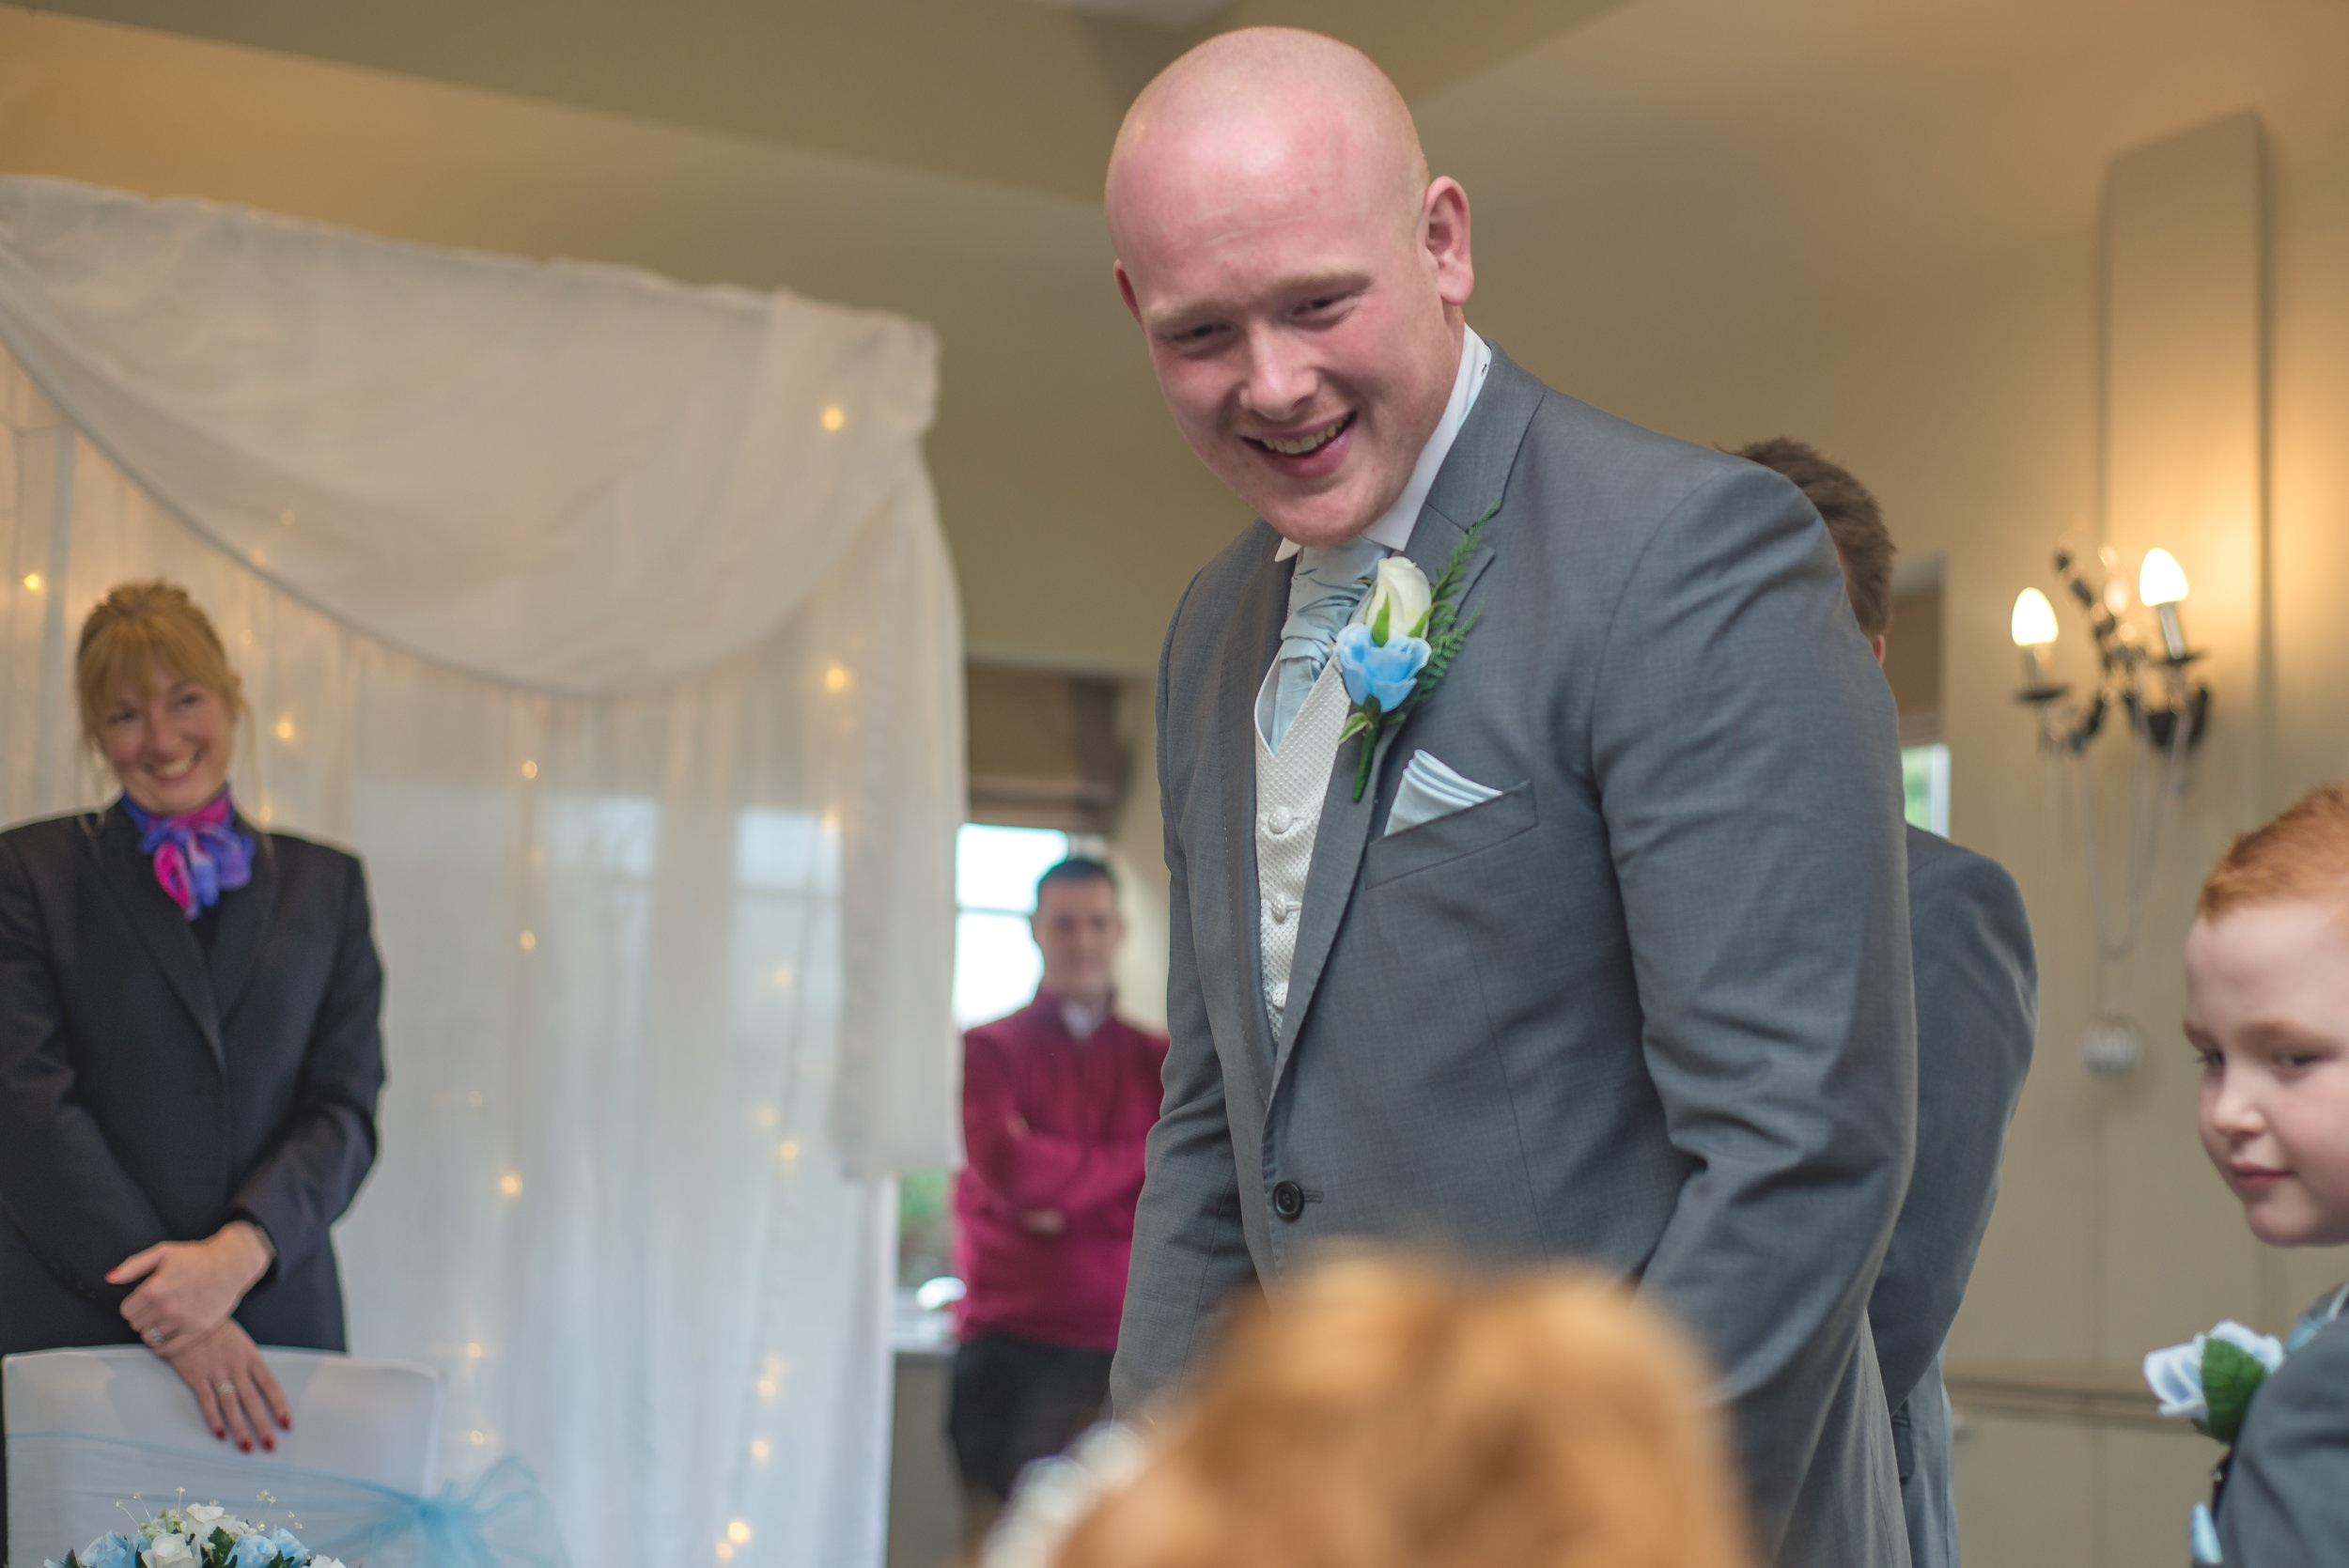 wedding photography and wedding videography, groom sees his daughter for the first time